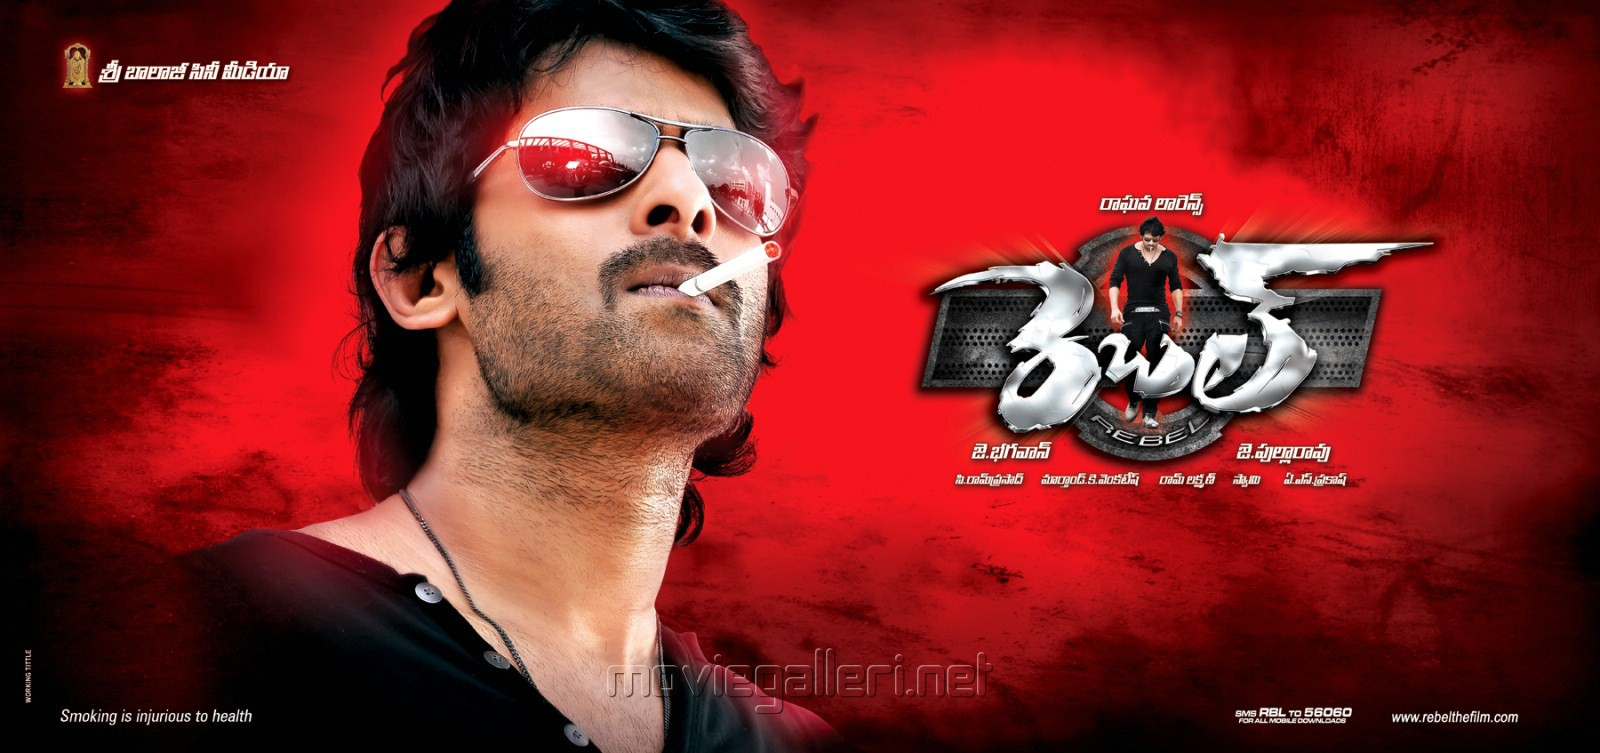 Stylish Prabhas Hq Wallpaper In Rebel: TELUGU MOVIES: REBEL MOVIE POSTER